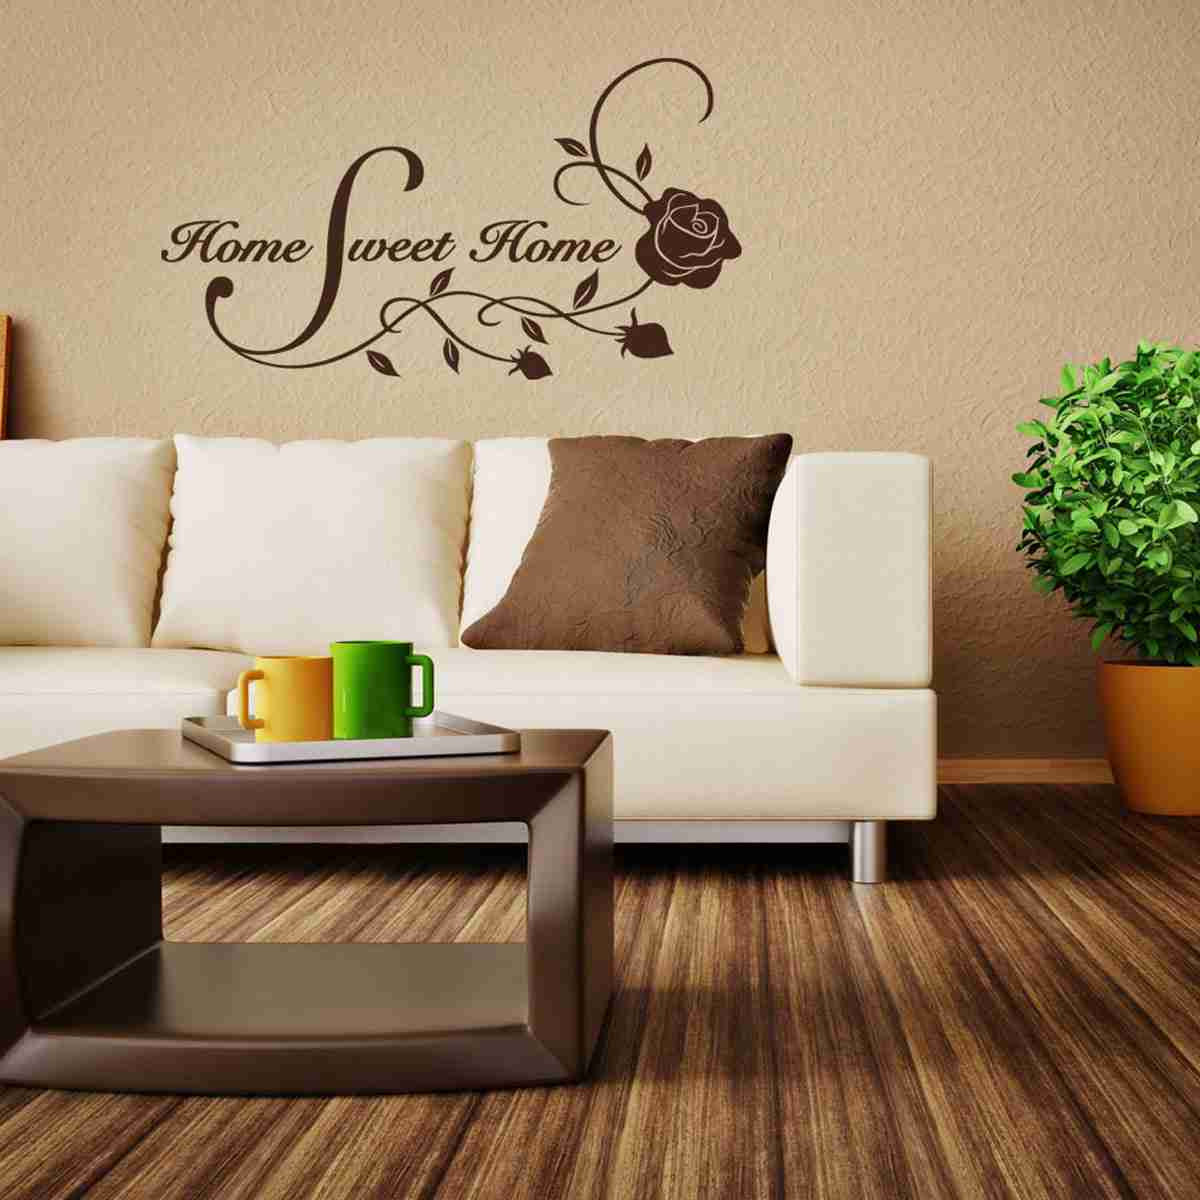 Home Sweet Home Floral Quote with Roses Wall Decal-Wall Decals-Style and Apply